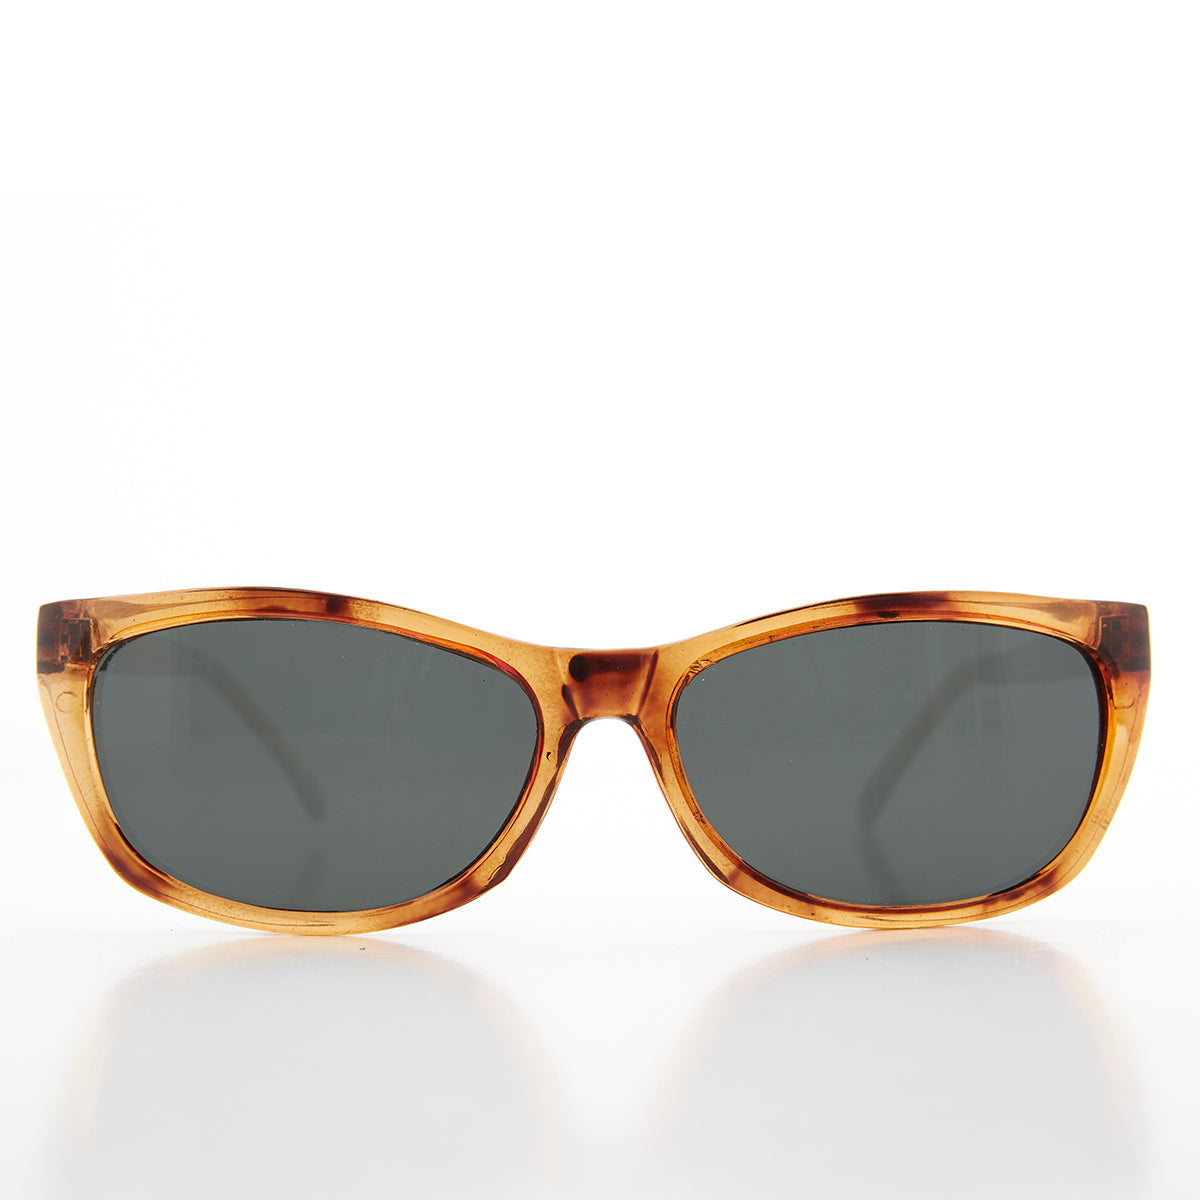 Rectangular Beatnik Deadstock Sunglass with Glass Lens